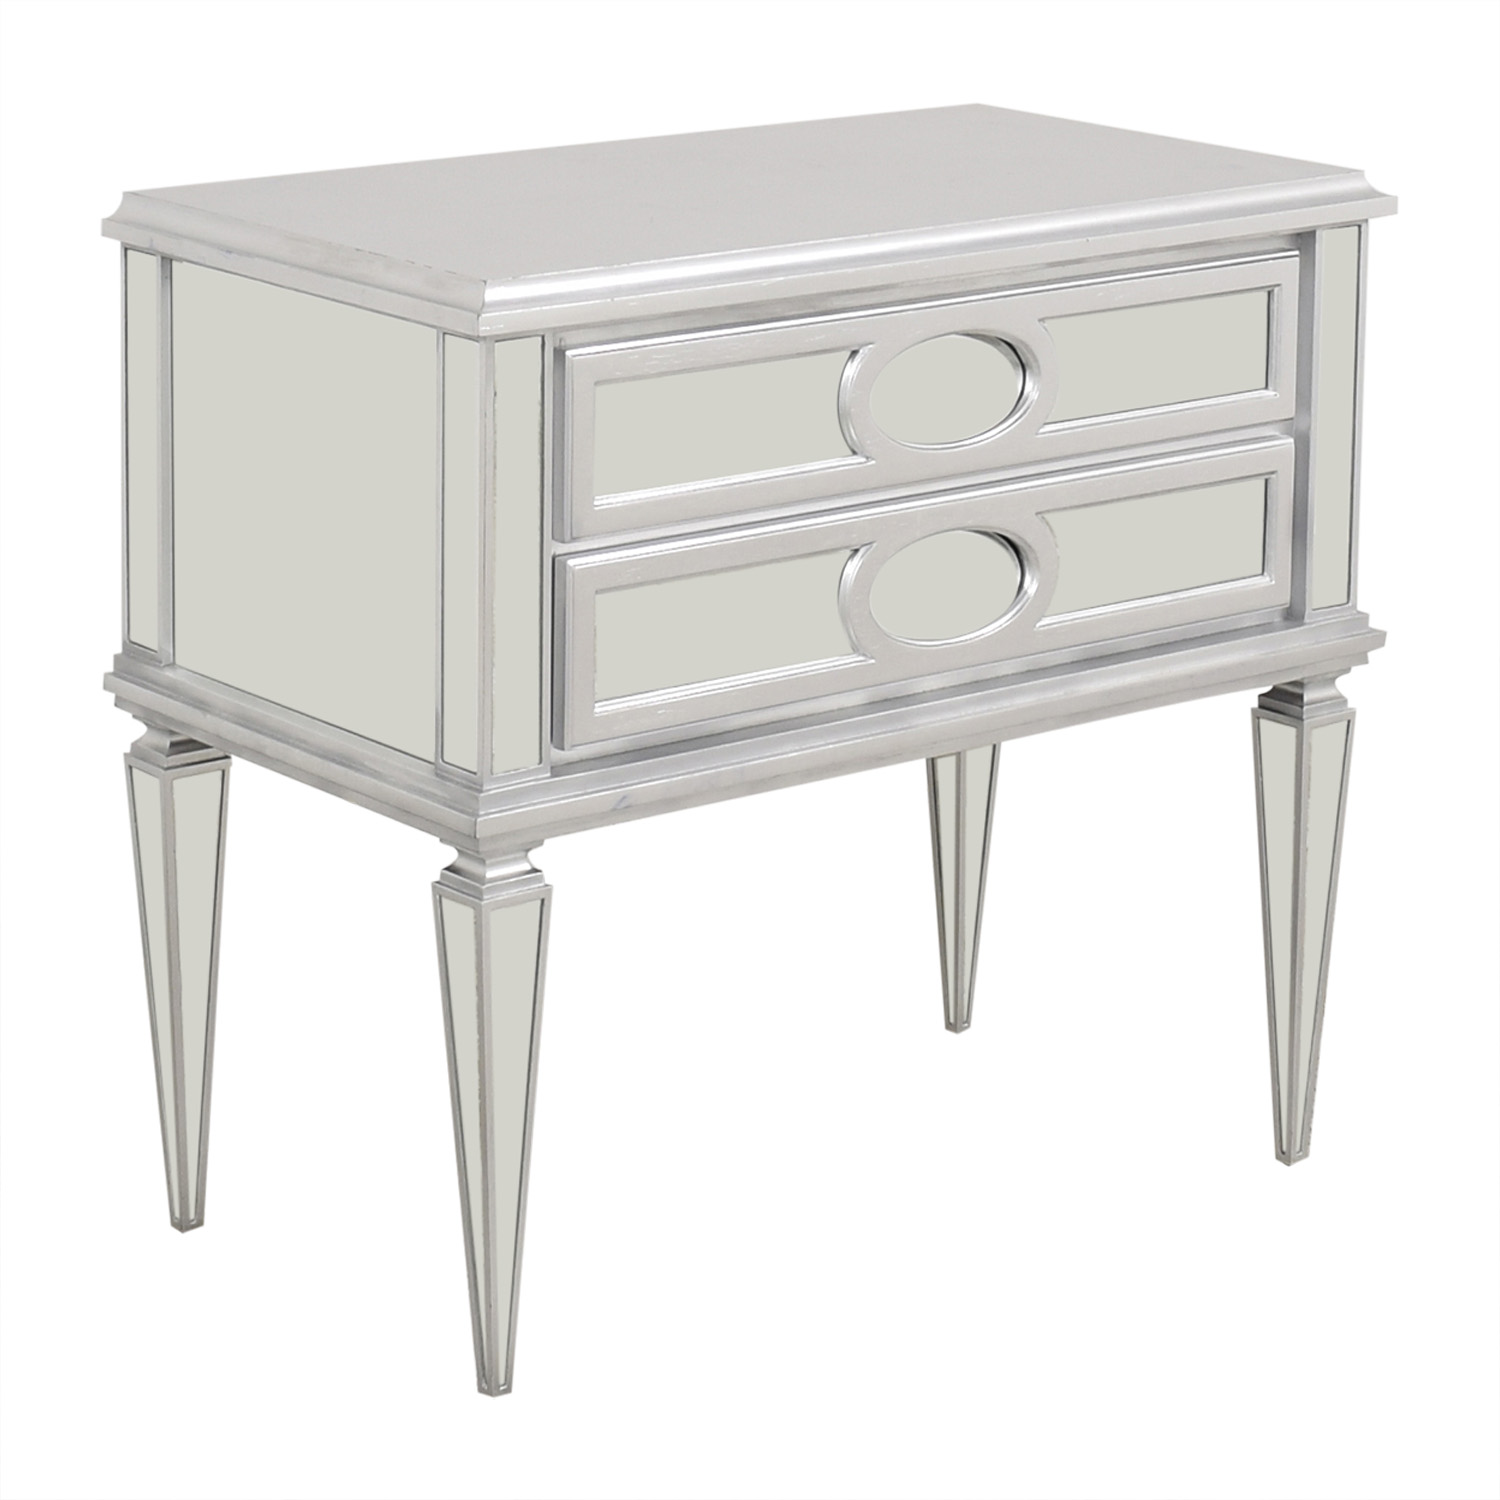 Christopher Guy Christopher Guy Montmartre End Table nj